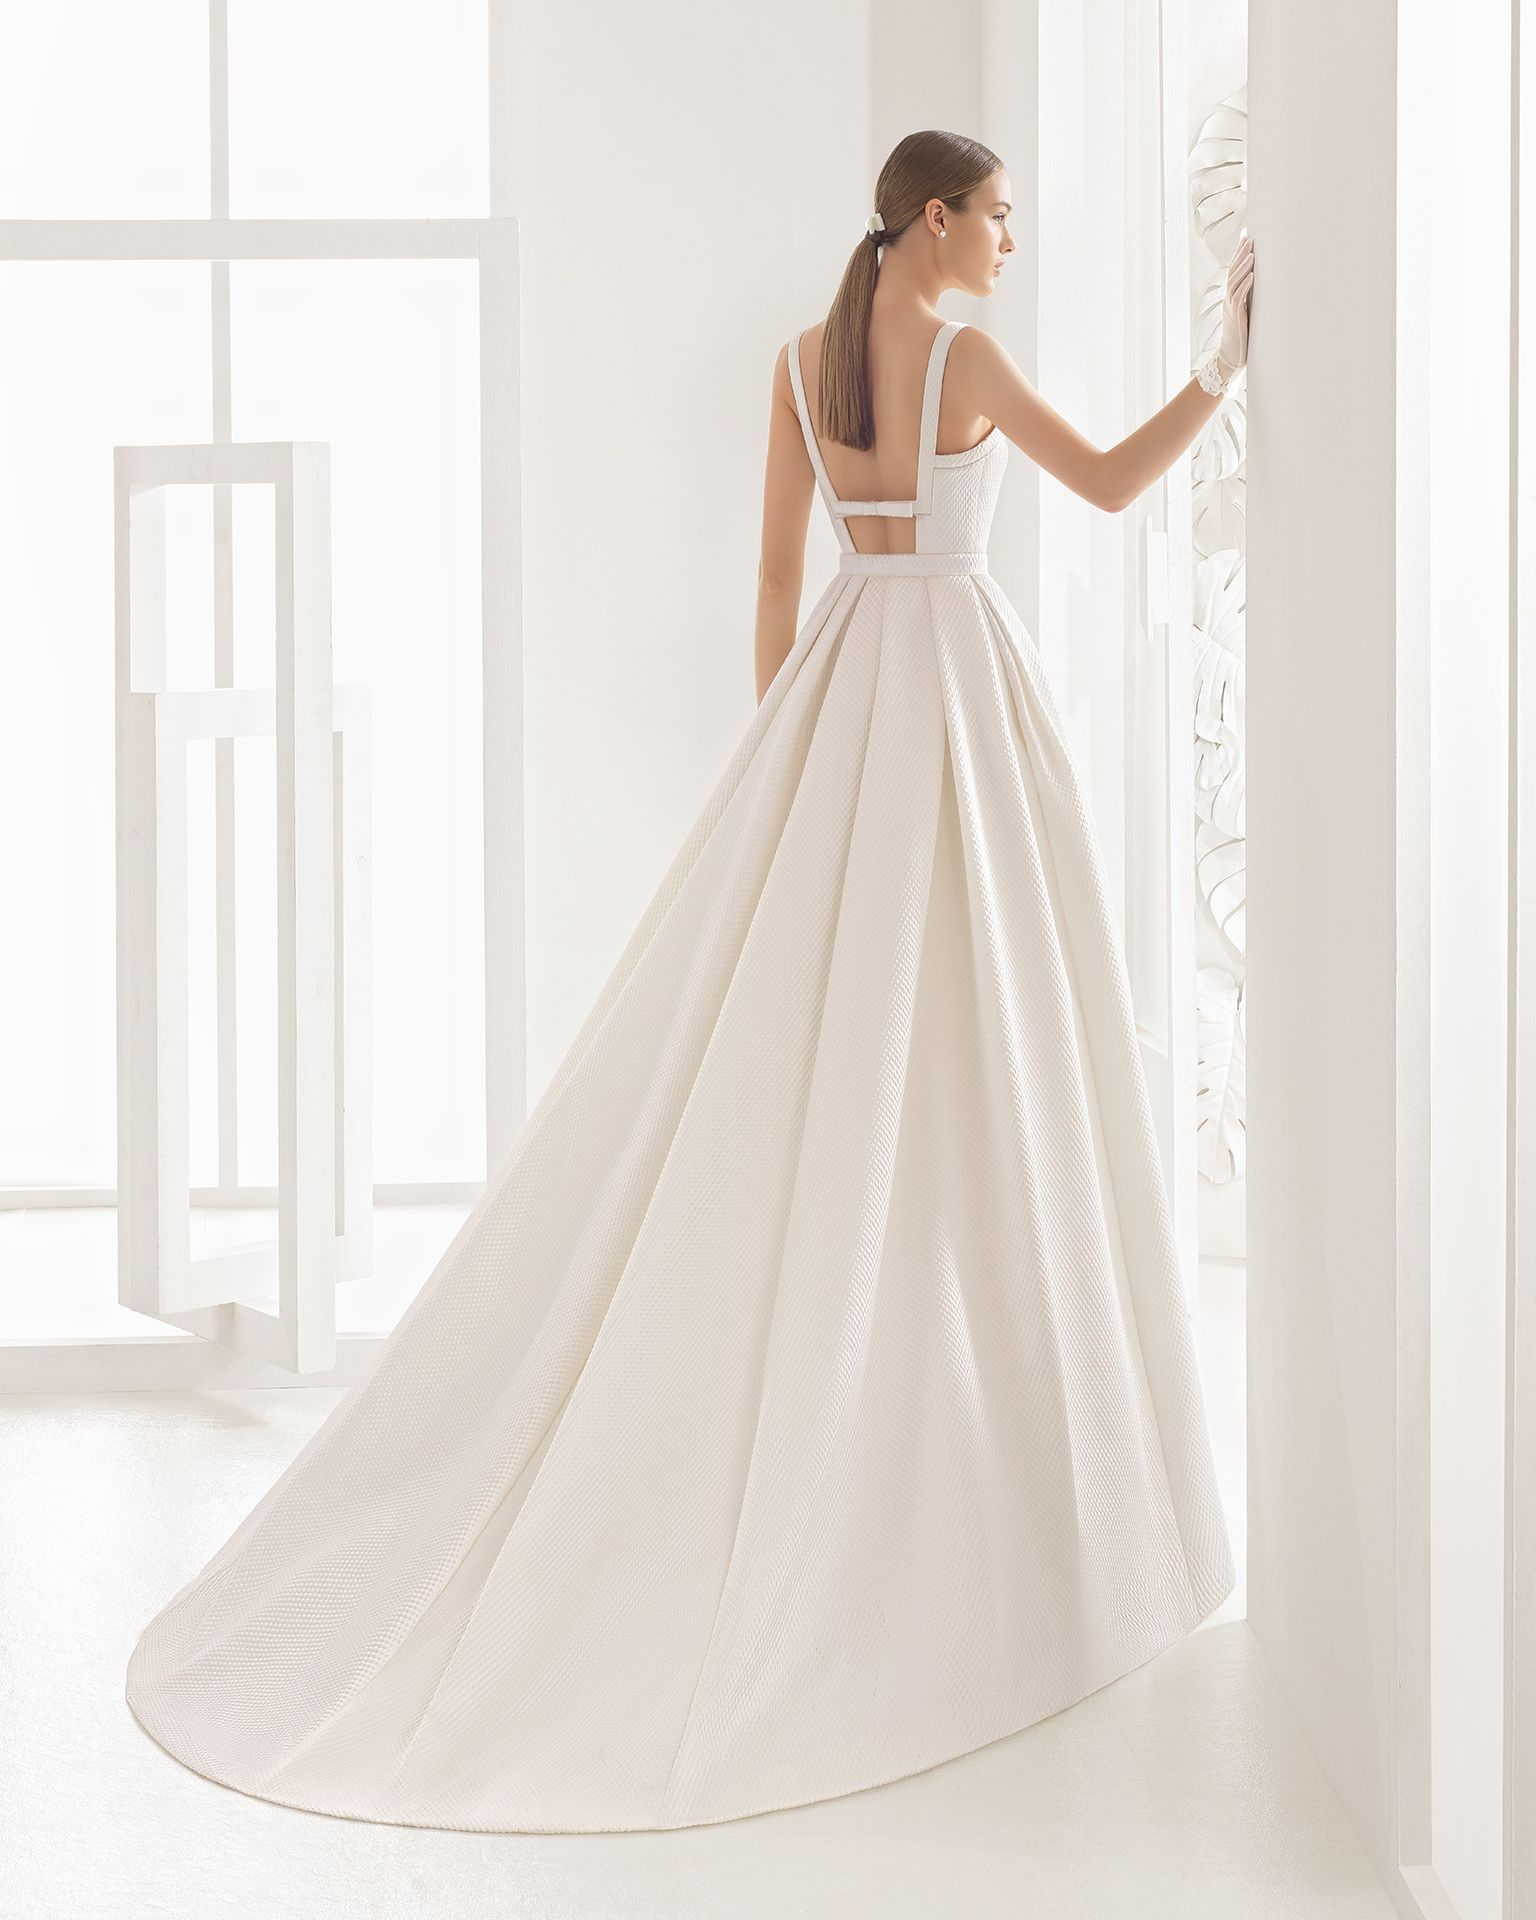 2017 Bridal Collection. Rosa Clará. In 2019